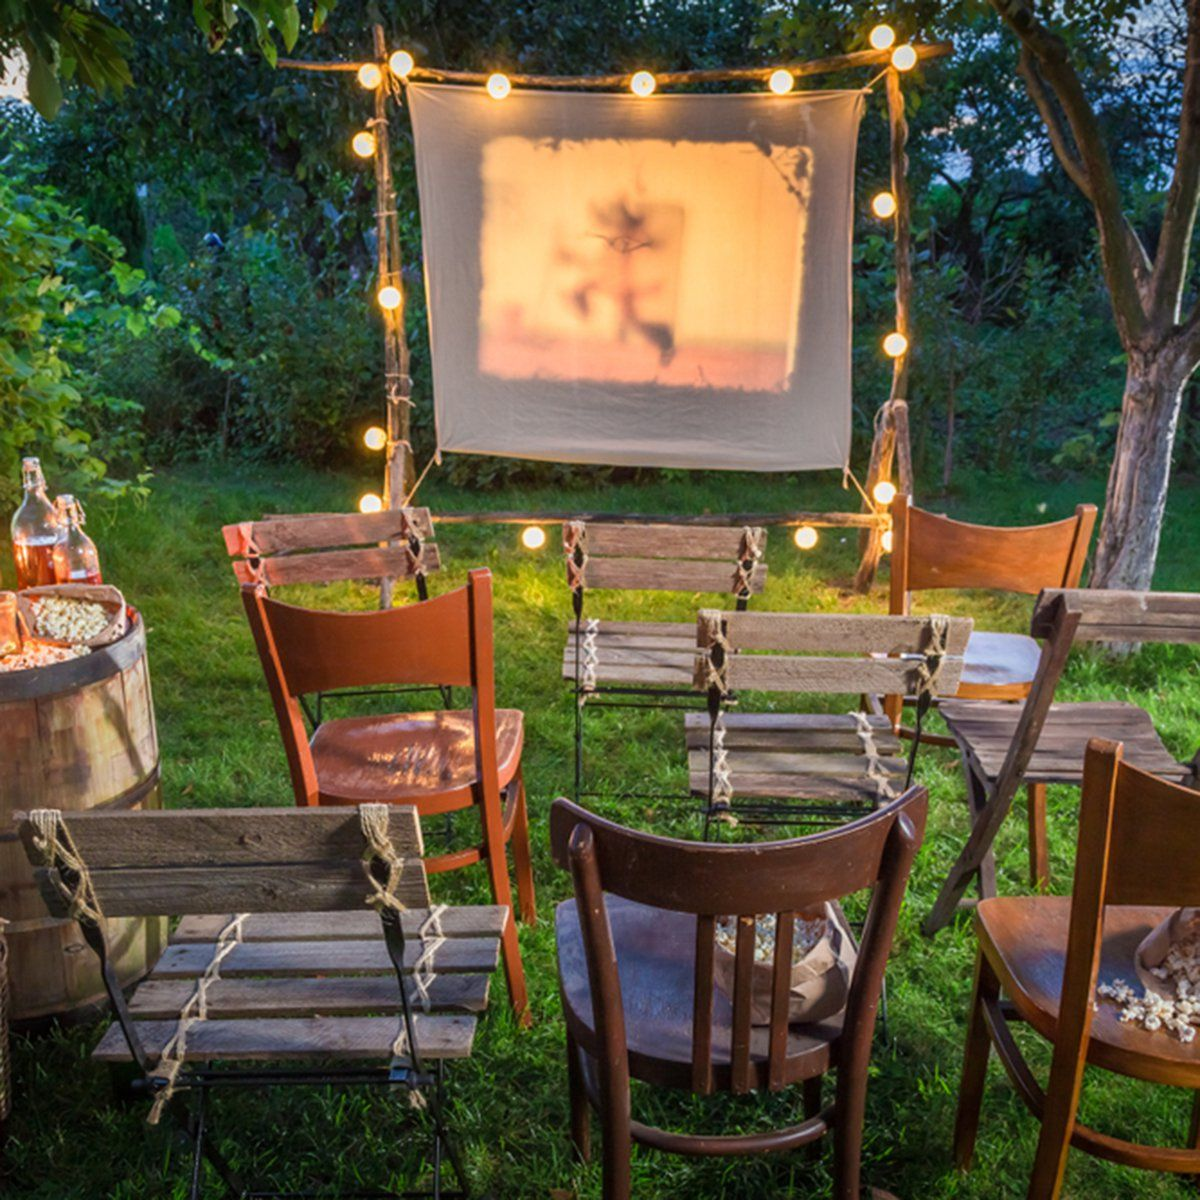 10 Fun Ideas for an Outdoor Movie Night Outdoor movie